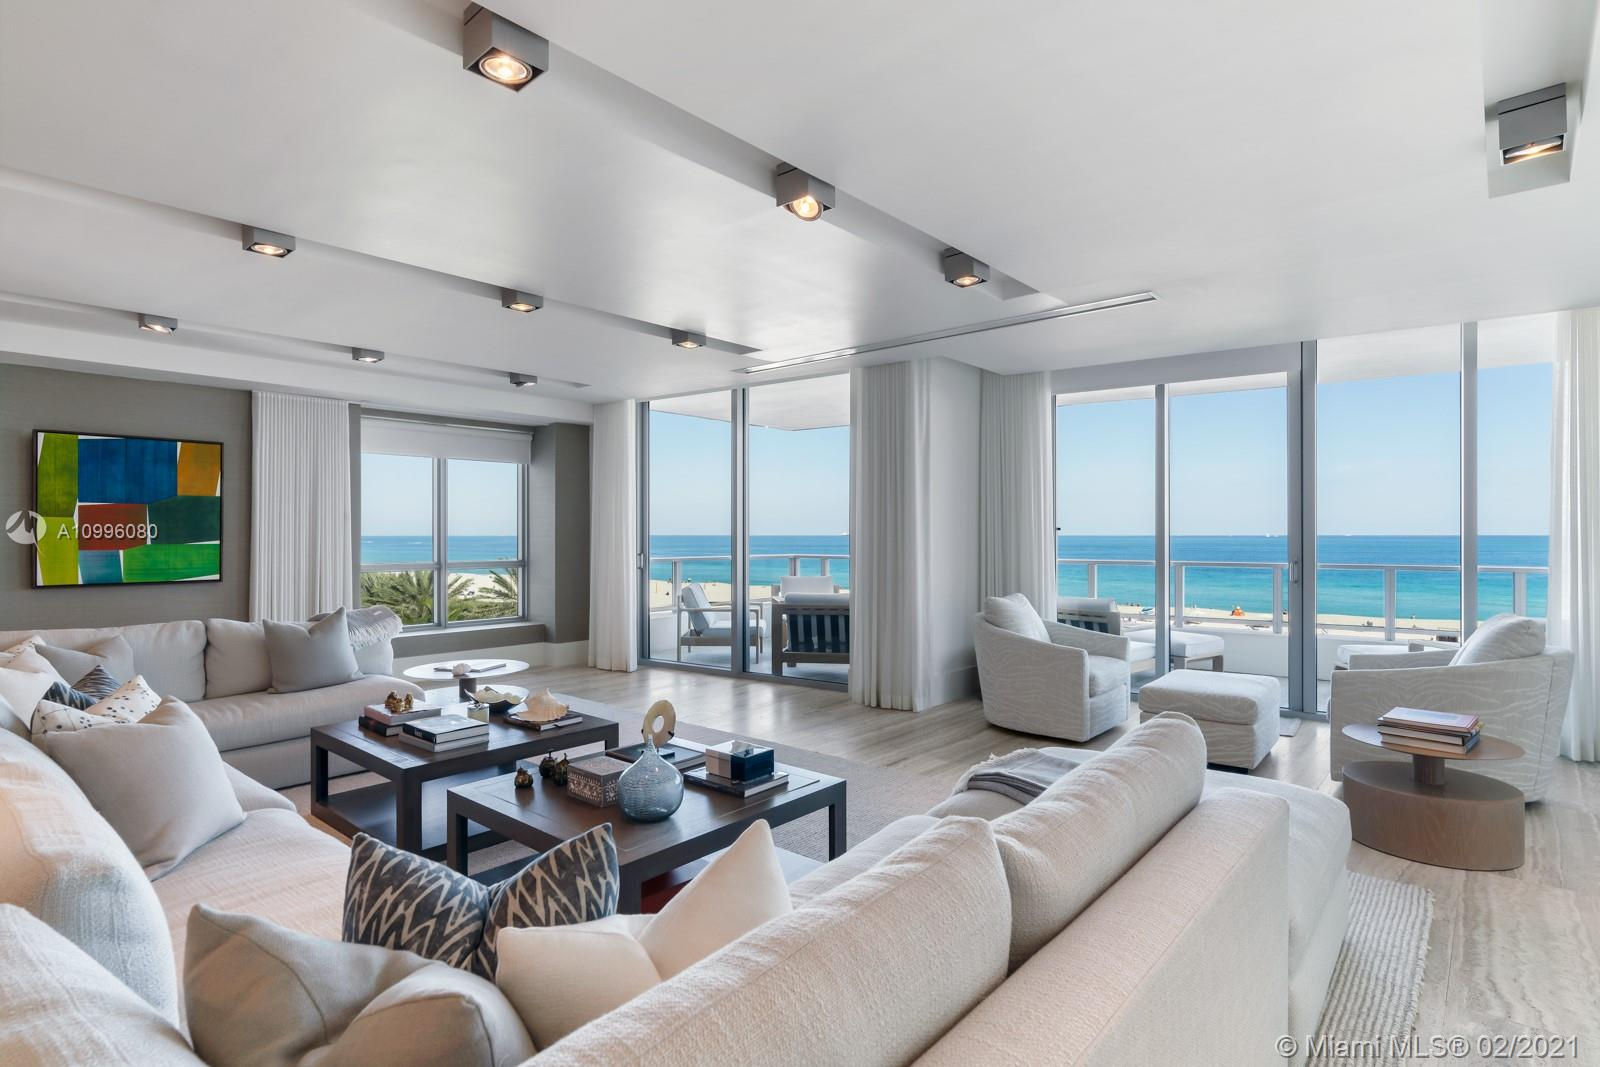 Privacy, tranquility & serenity describe the lifestyle at Ocean House. This expansive East-to-West flowthrough residence boasts an open floor plan, top of the line kitchen with gas range and stunning views of the Atlantic Ocean. Located in the heart of South Of Fifth, Ocean House is a boutique waterfront building on the famous Ocean Drive and steps to some of the cities top restaurants, bars and South Pointe Park & Marina.